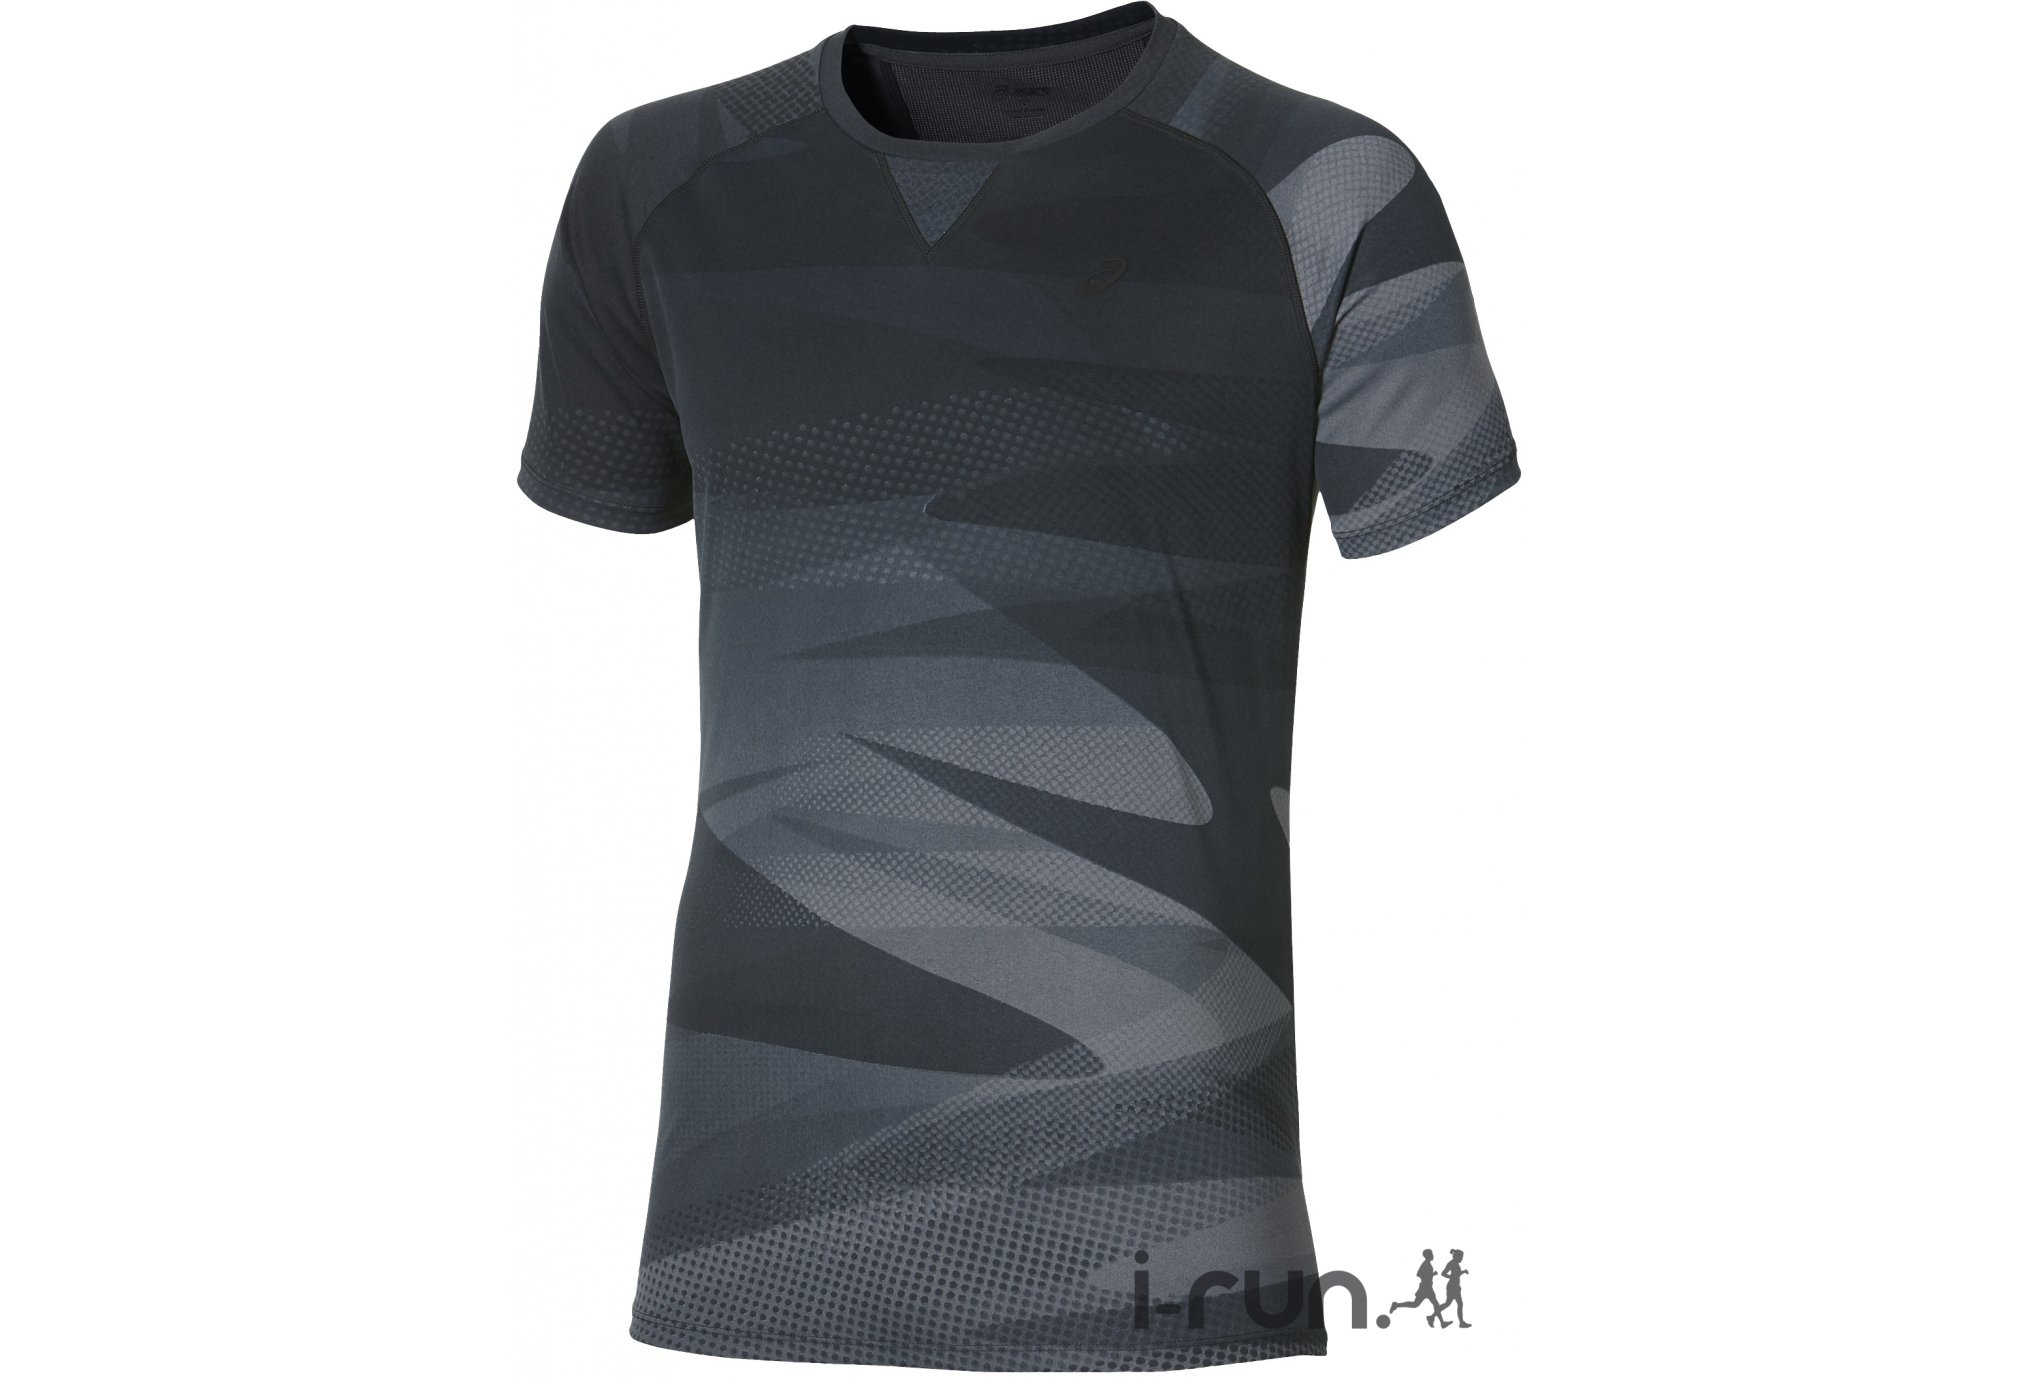 Asics Tee-Shirt Print Top M vêtement running homme